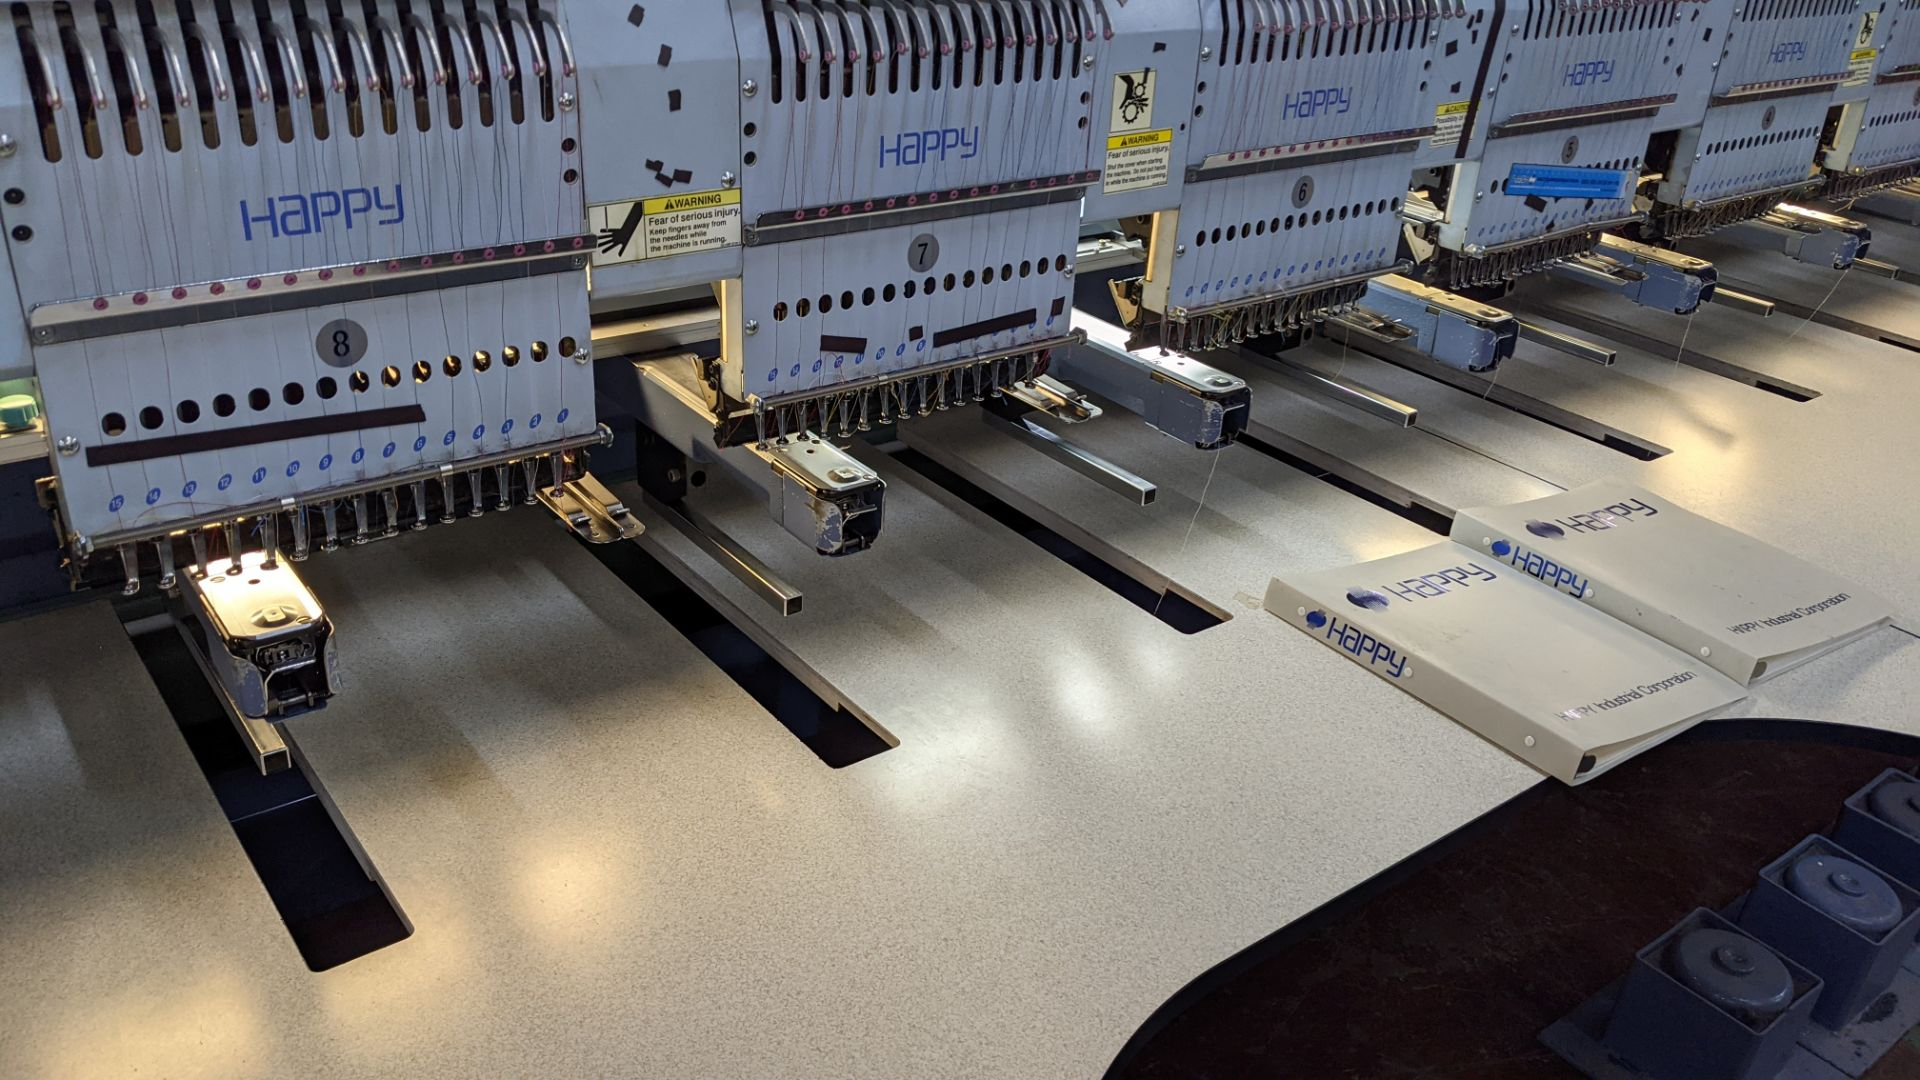 Happy 8 head embroidery machine, model HCG-1508-45TTC, 15 needles per head, including frames & other - Image 13 of 27